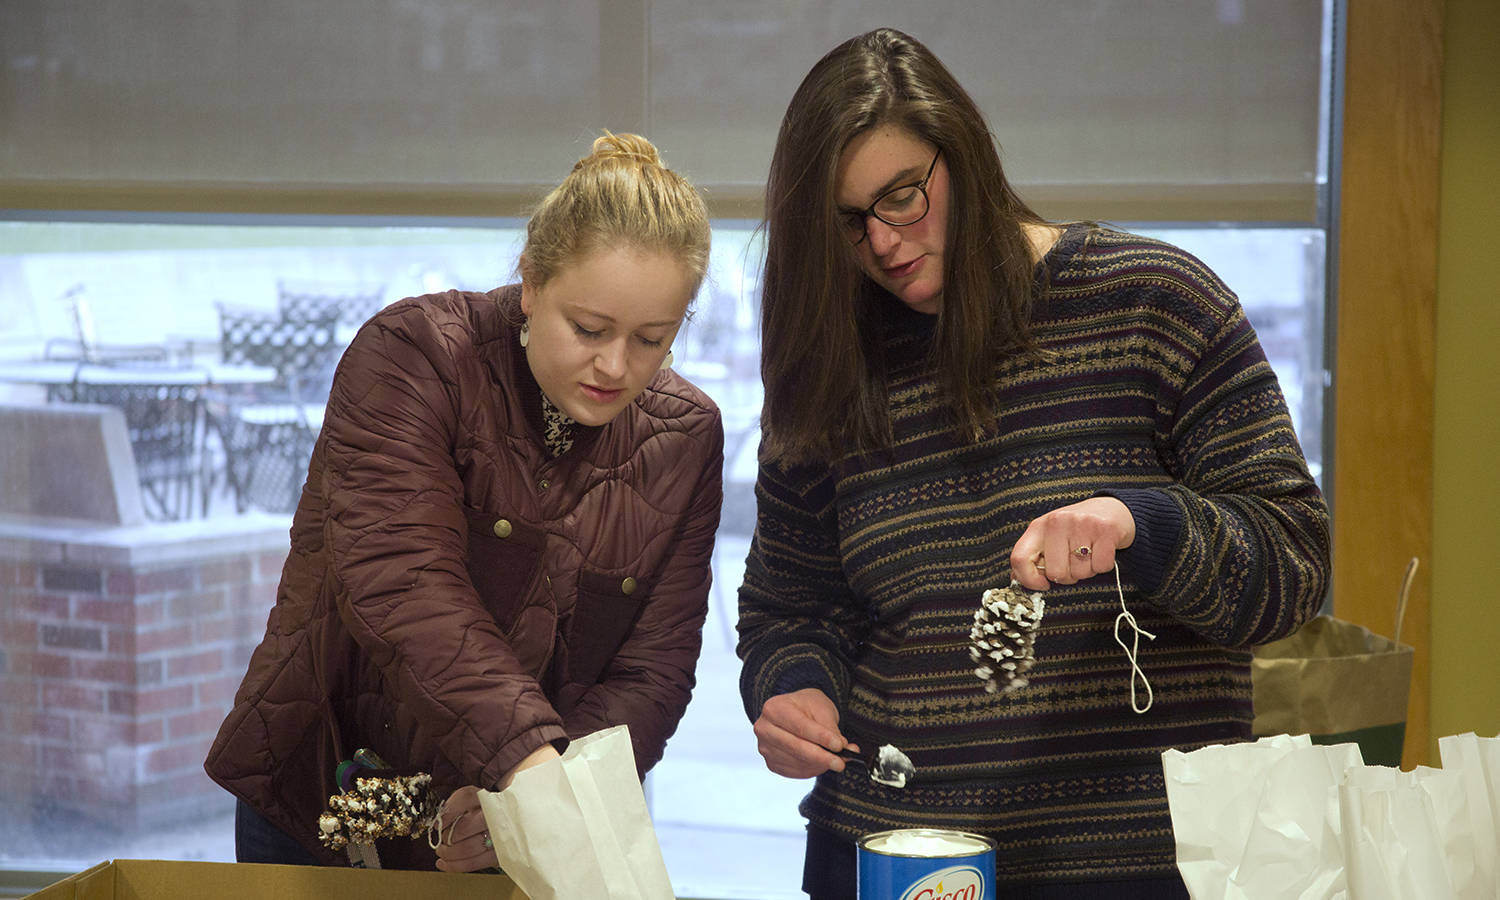 As part of Earth Week, Katie Burns '18 (left) and Rebecca Czajkowski '18 craft pinecone birdfeeders in Scandling Campus Center.